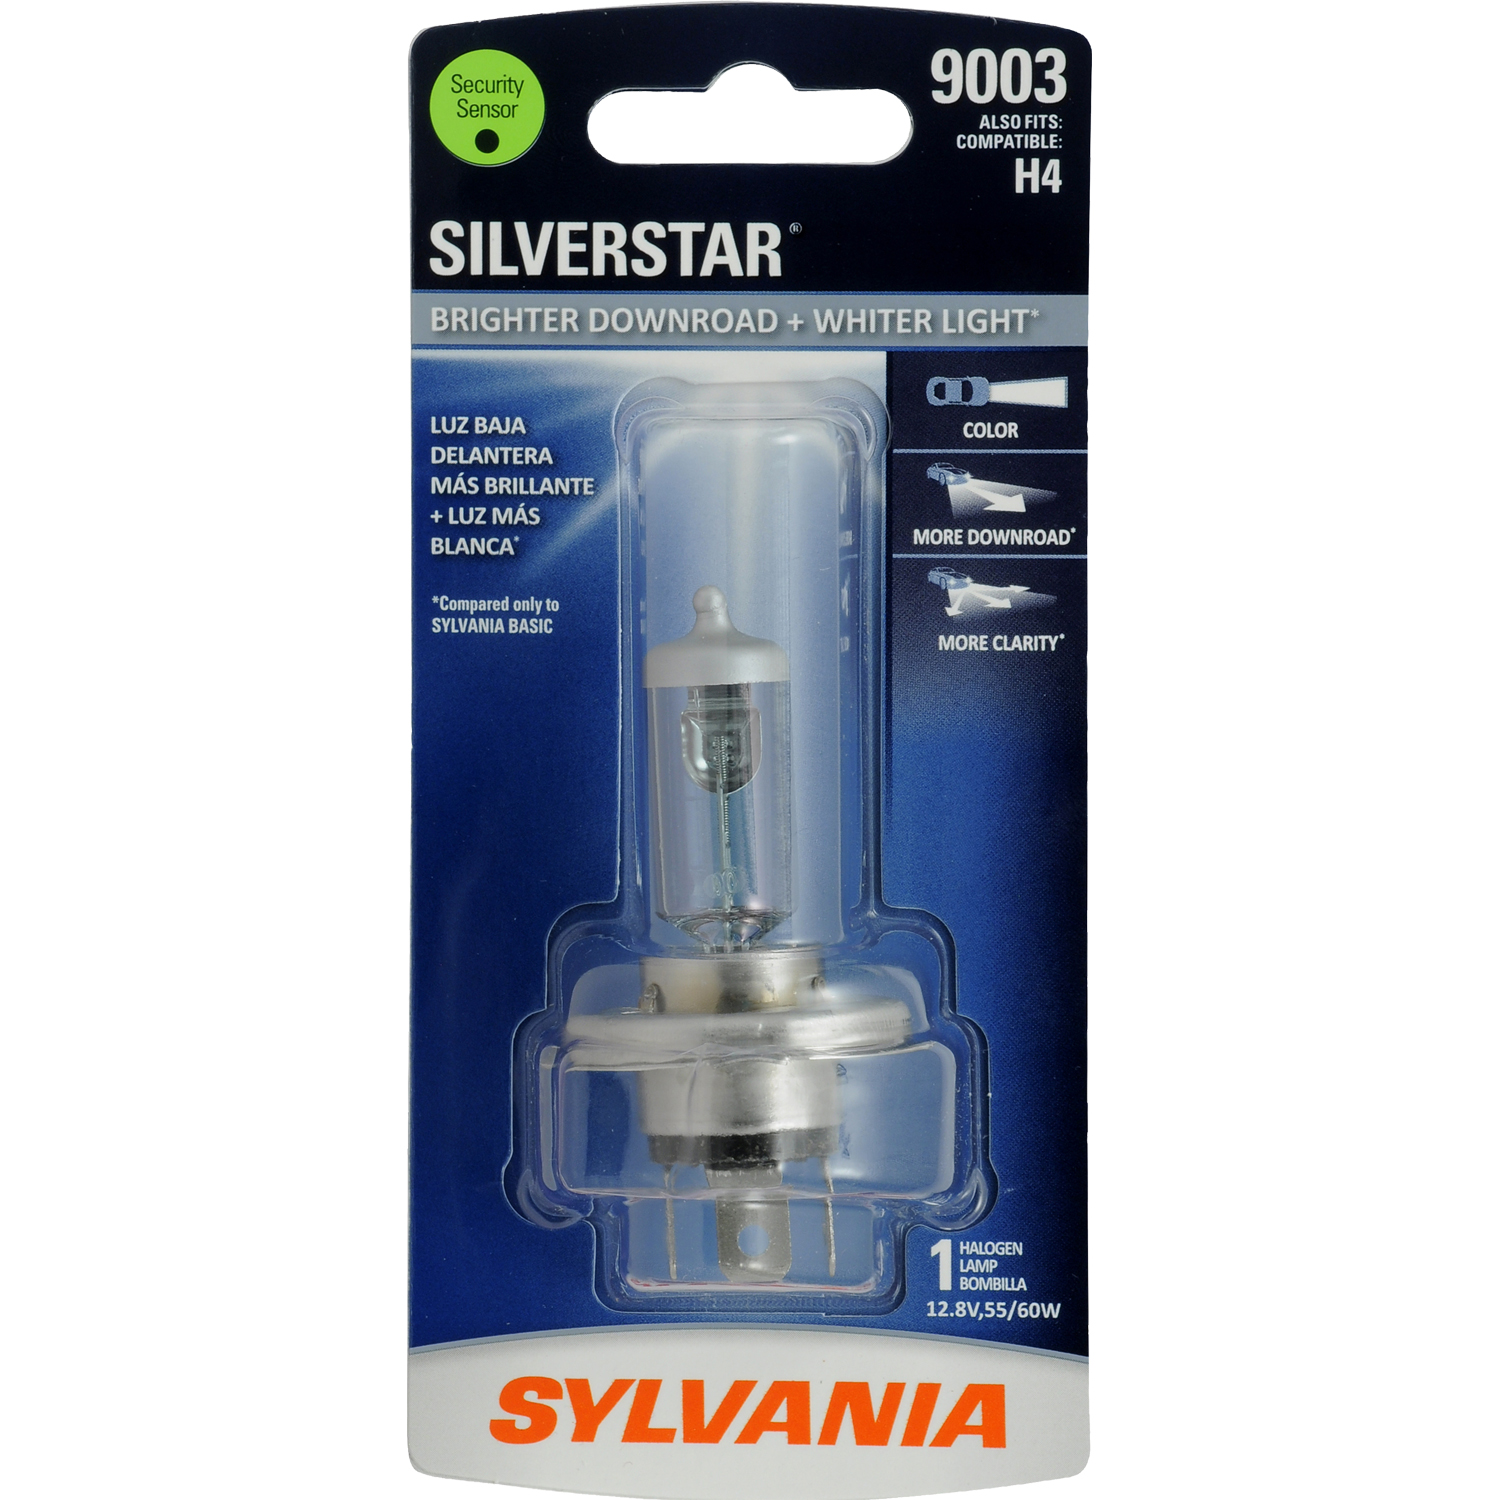 SYLVANIA 9003 SilverStar Halogen Headlight Bulb, Pack of 1